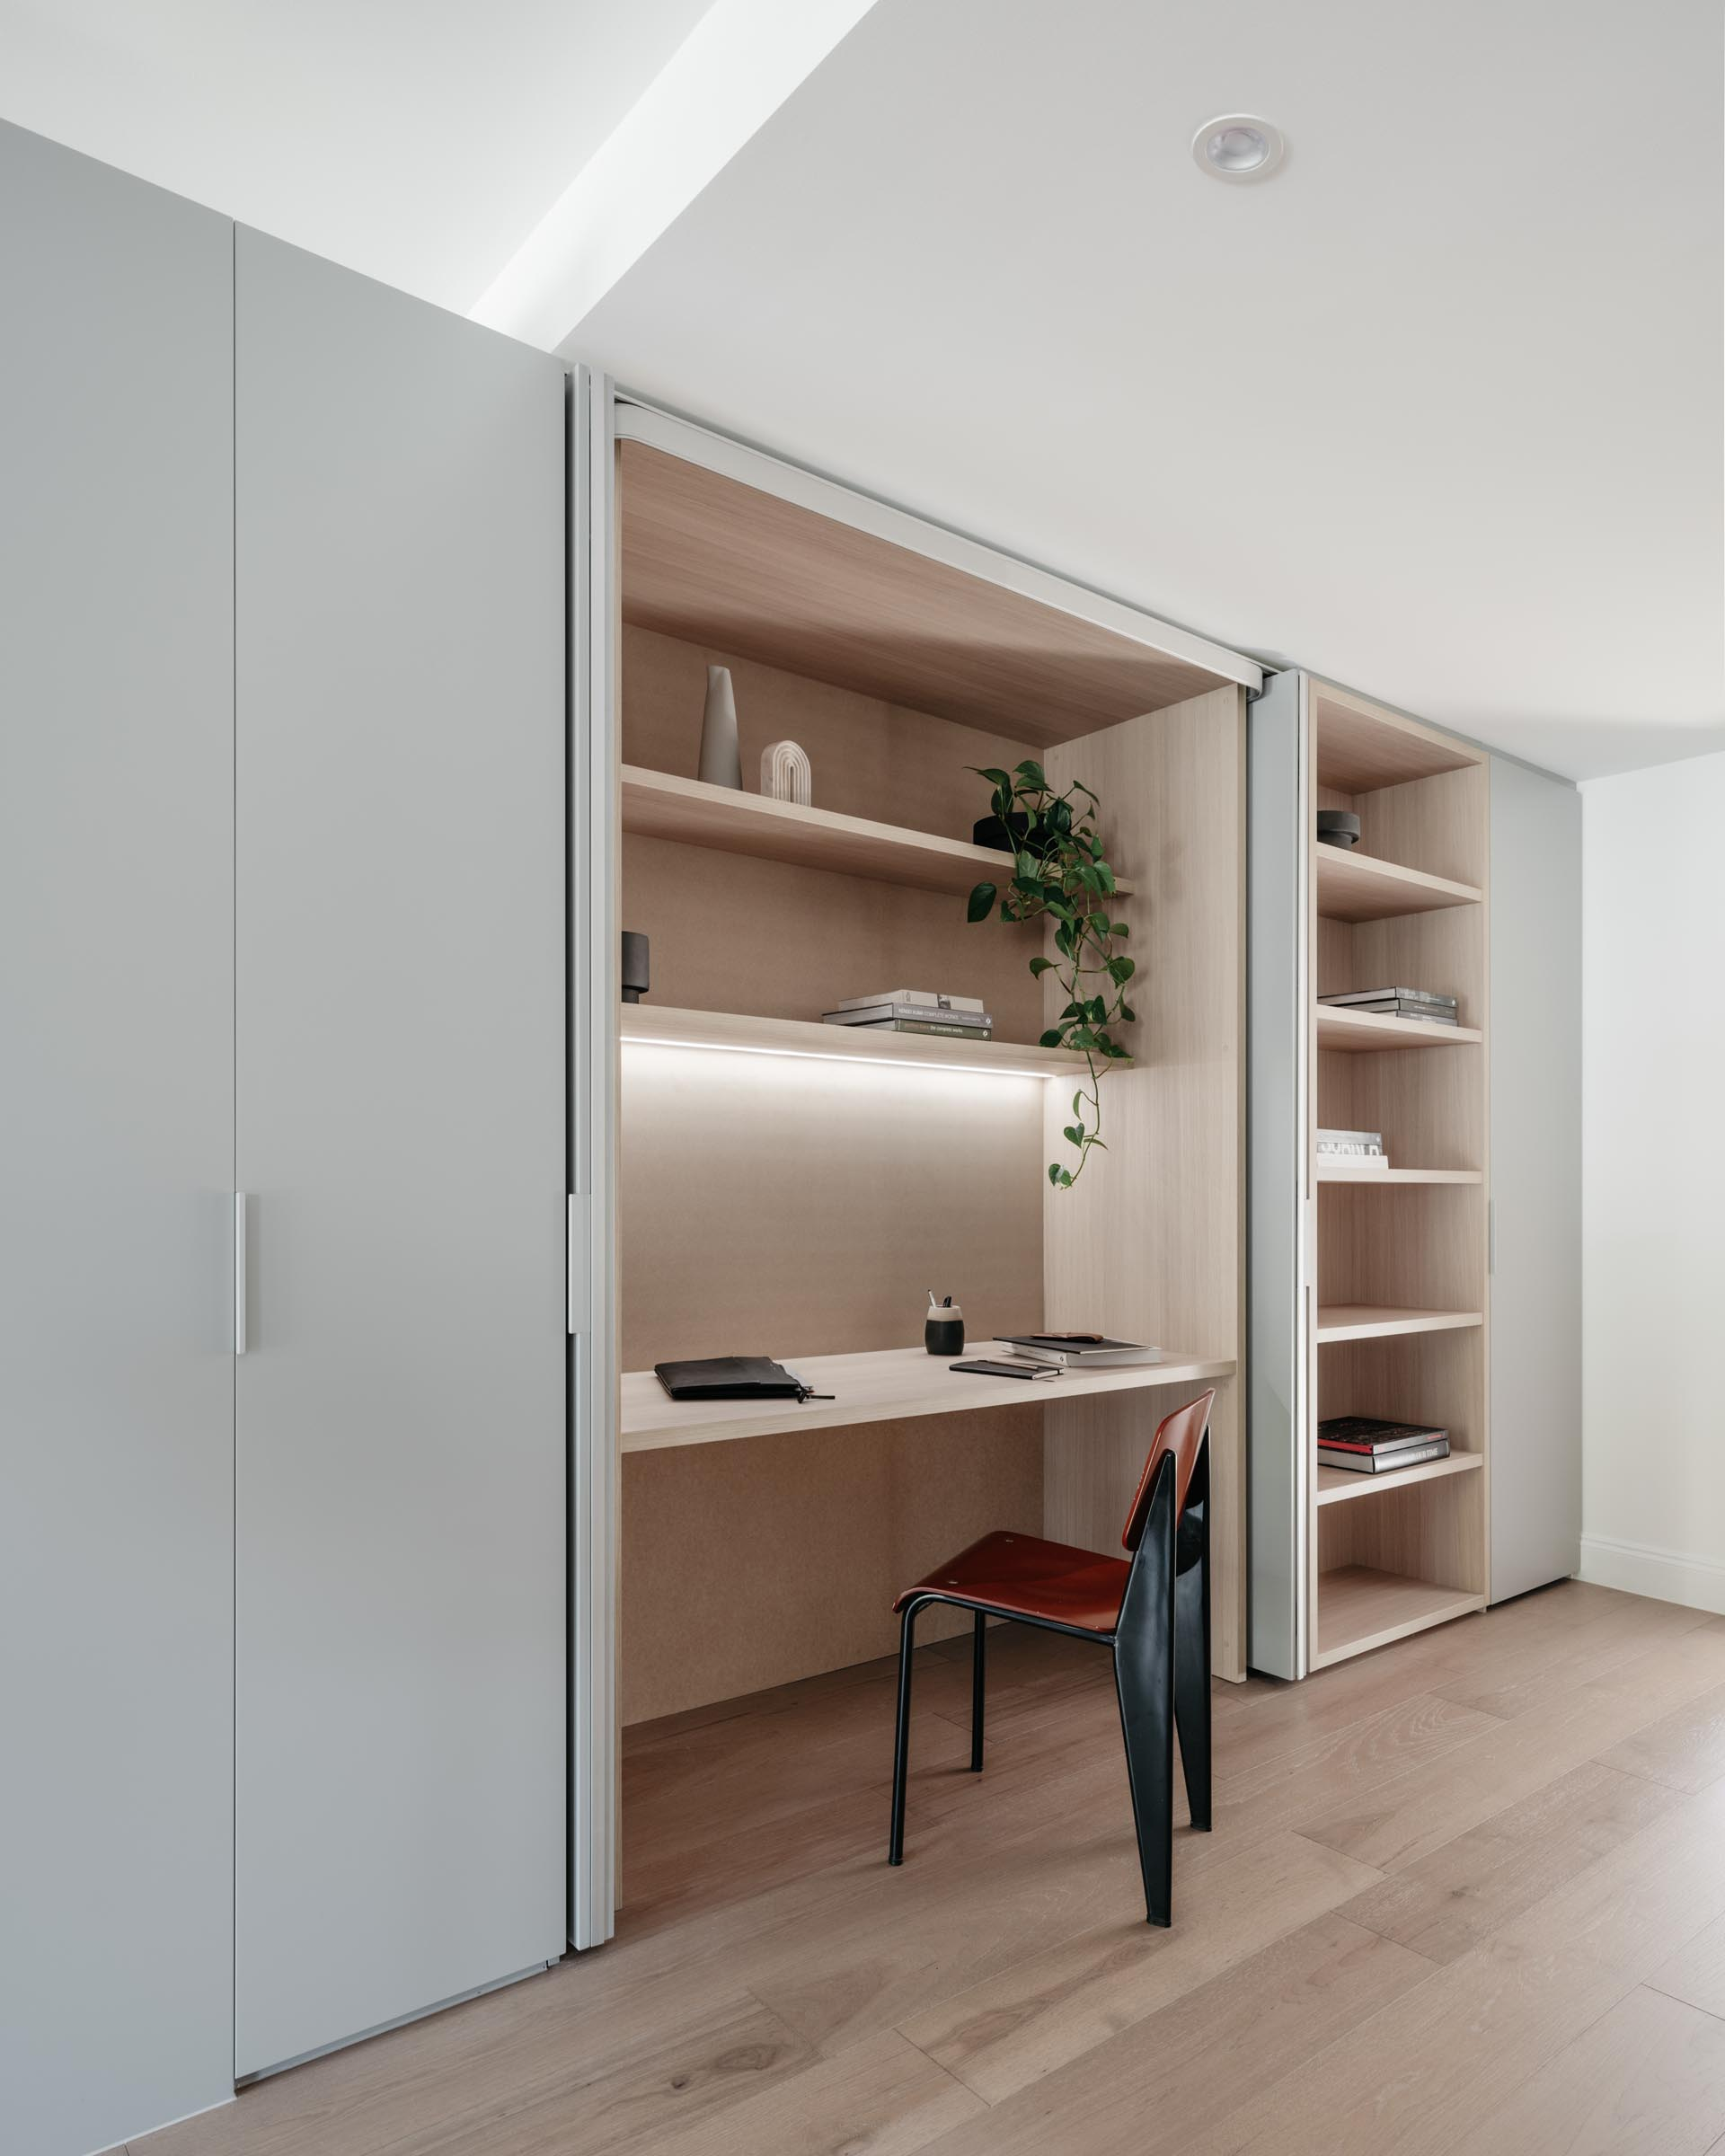 A modern wood-lined home office hidden within a closet.